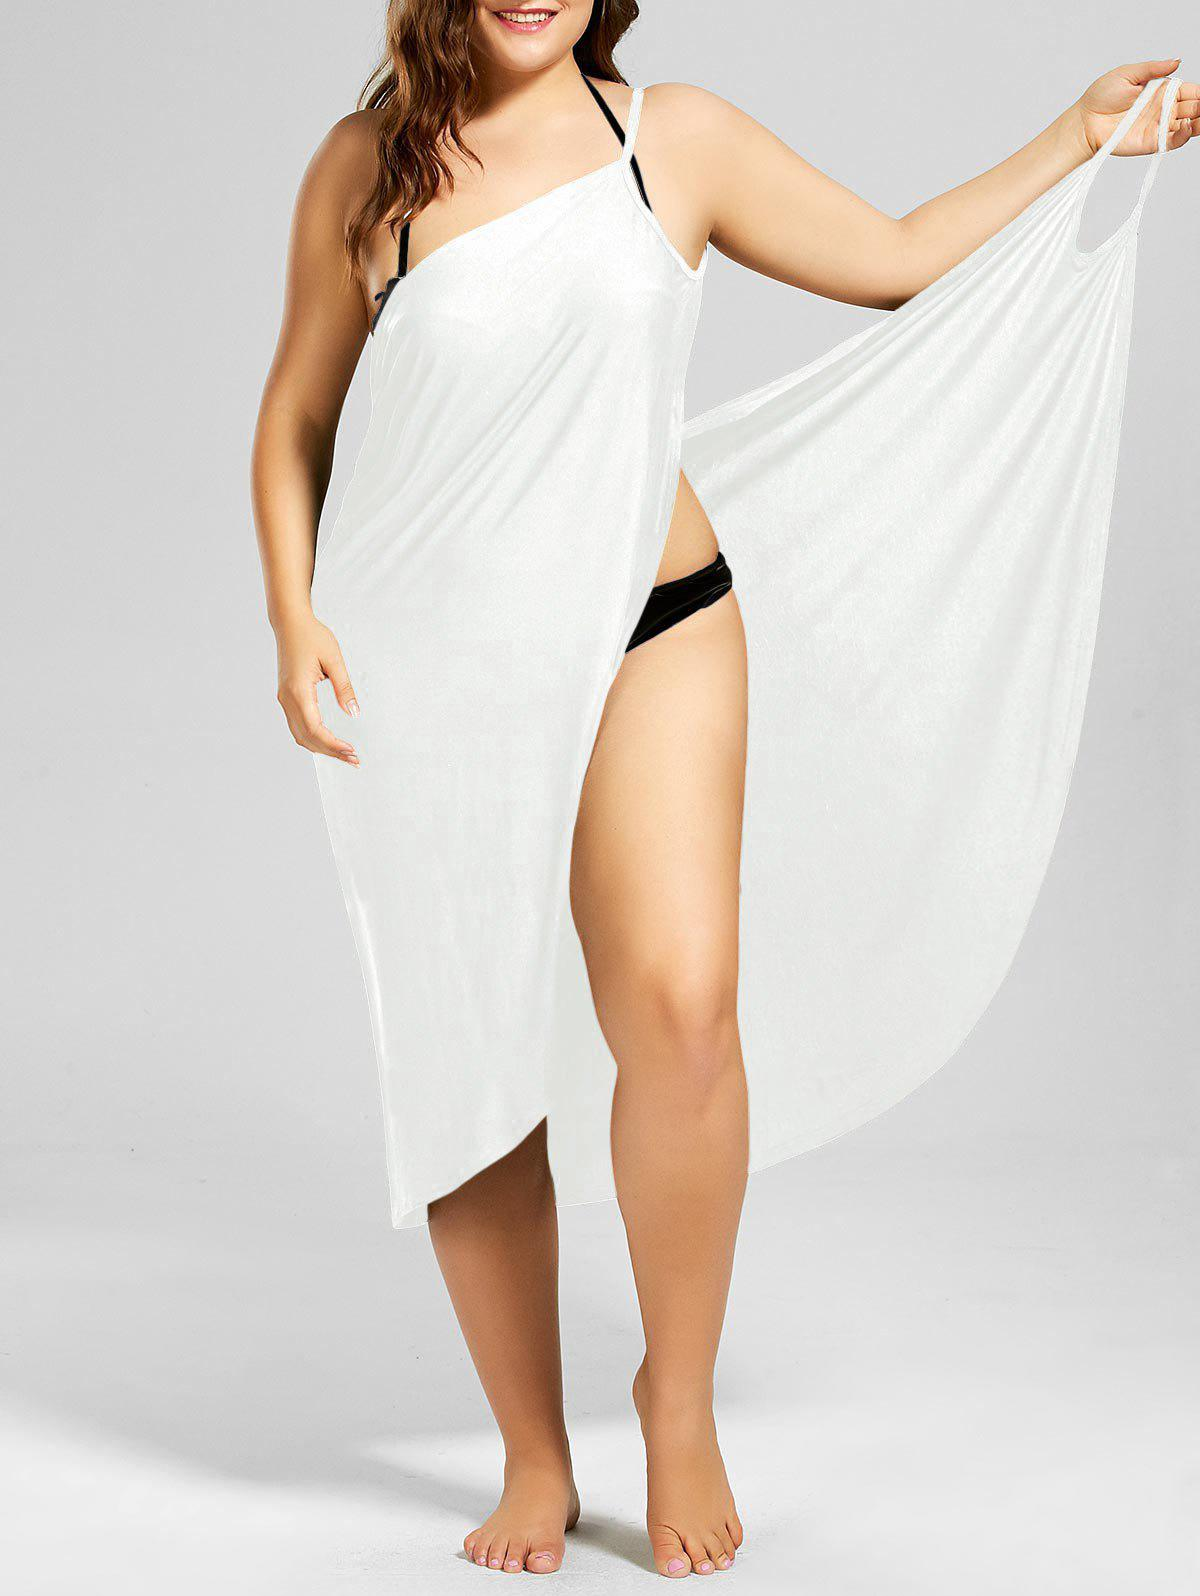 Fancy Beach Cover-up Plus Size Wrap Dress